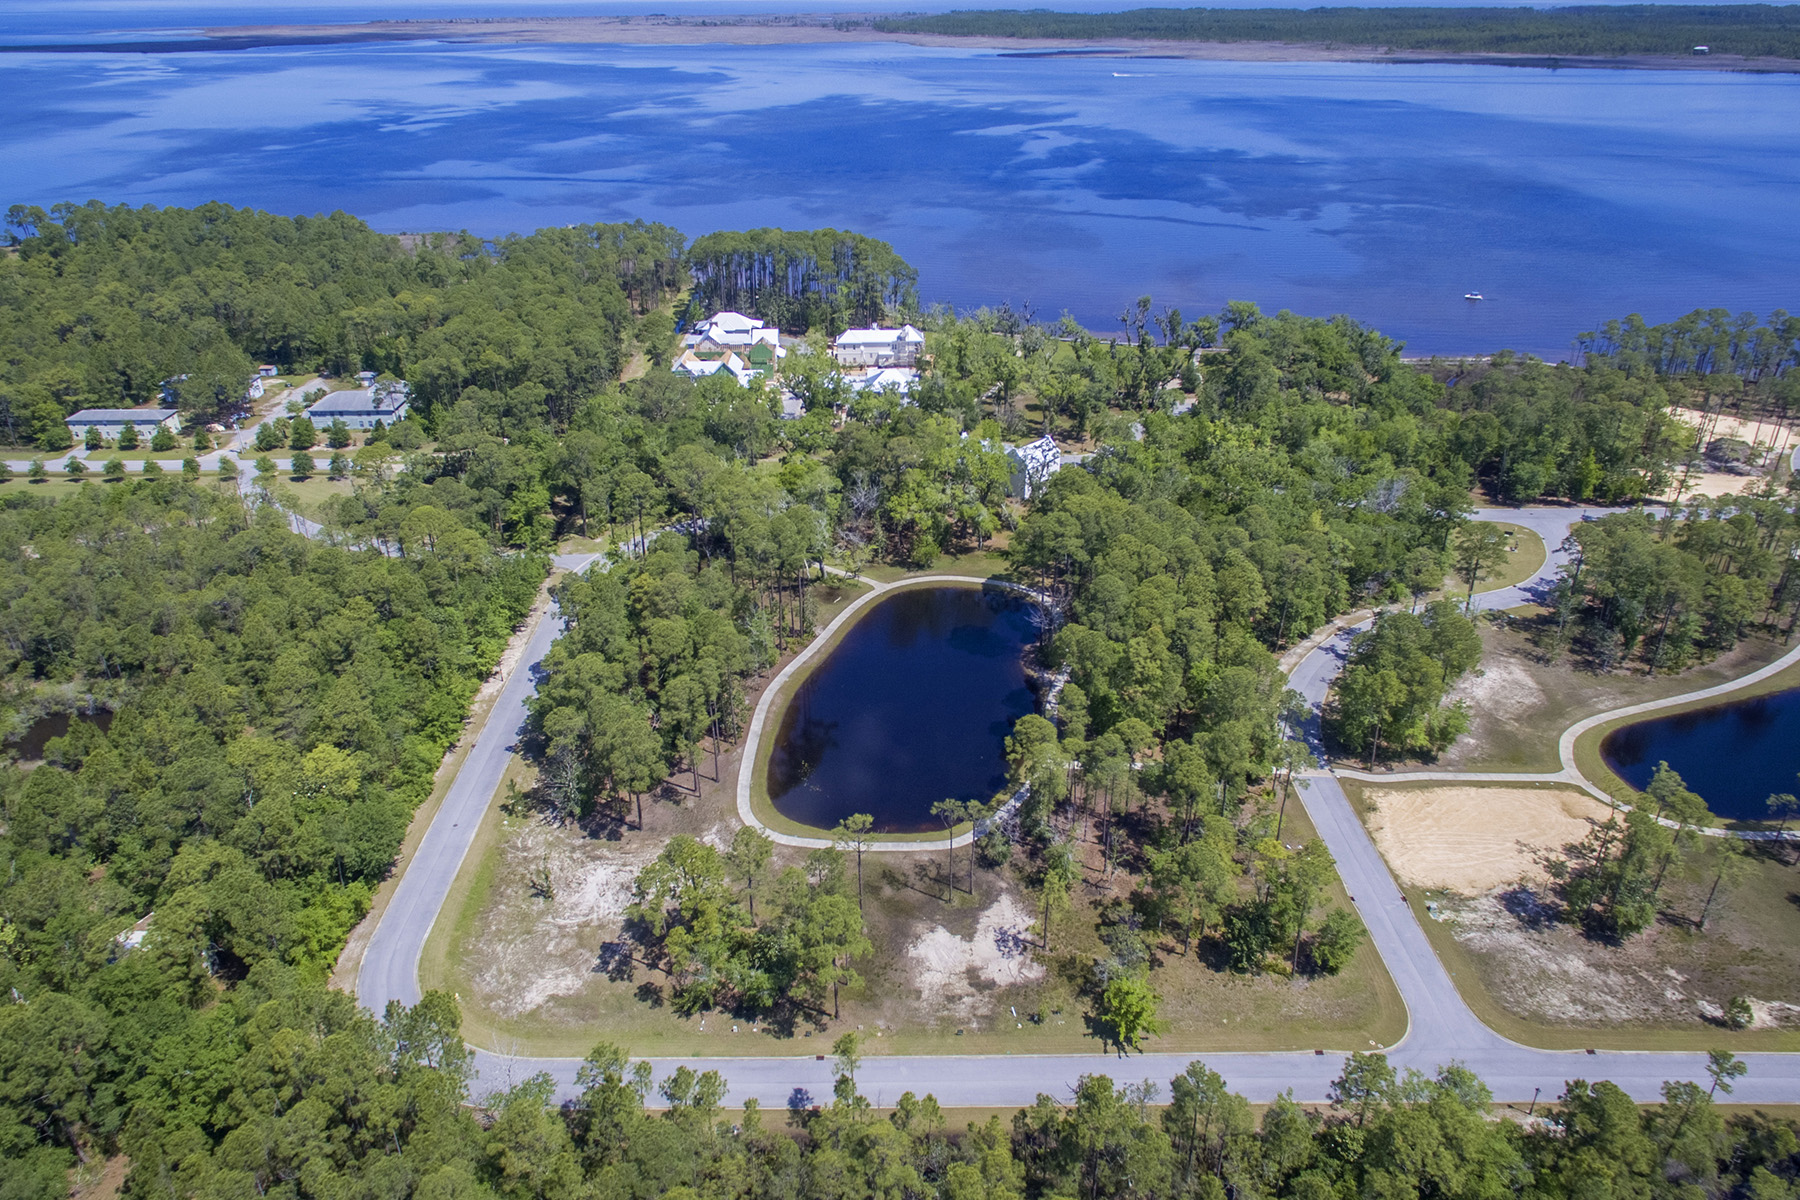 Land for Sale at BUILD YOUR DREAM HOME IN CHURCHILL OAKS Lot 38 Tyler, Santa Rosa Beach, Florida, 32459 United States